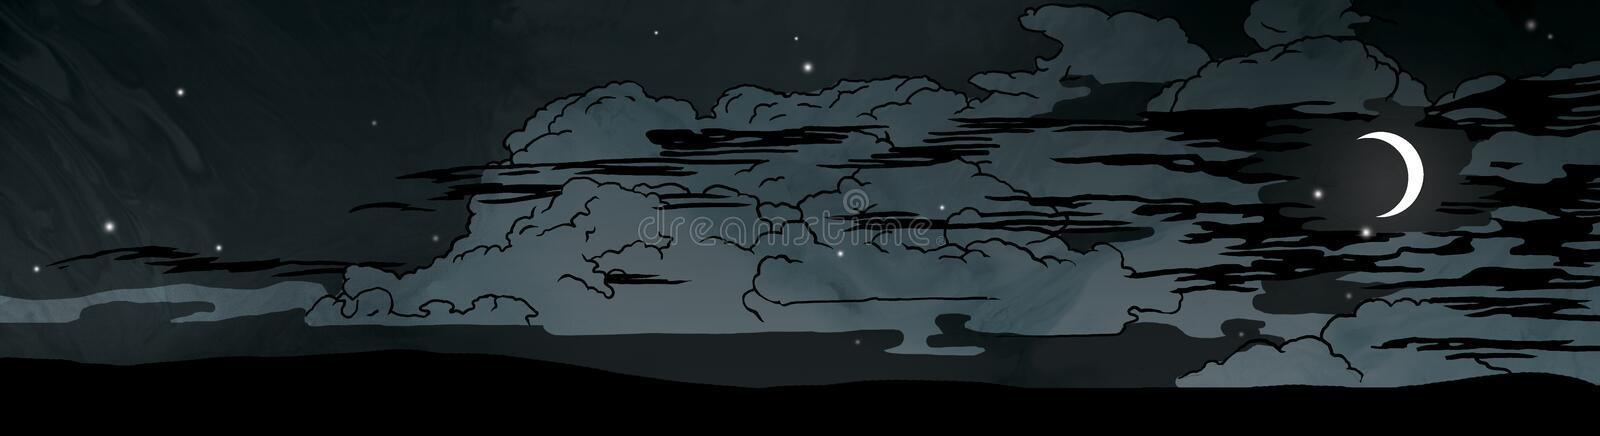 Download Dark Night Clouds And Moon In The Sky Illustration Stock Illustration - Image: 30235901